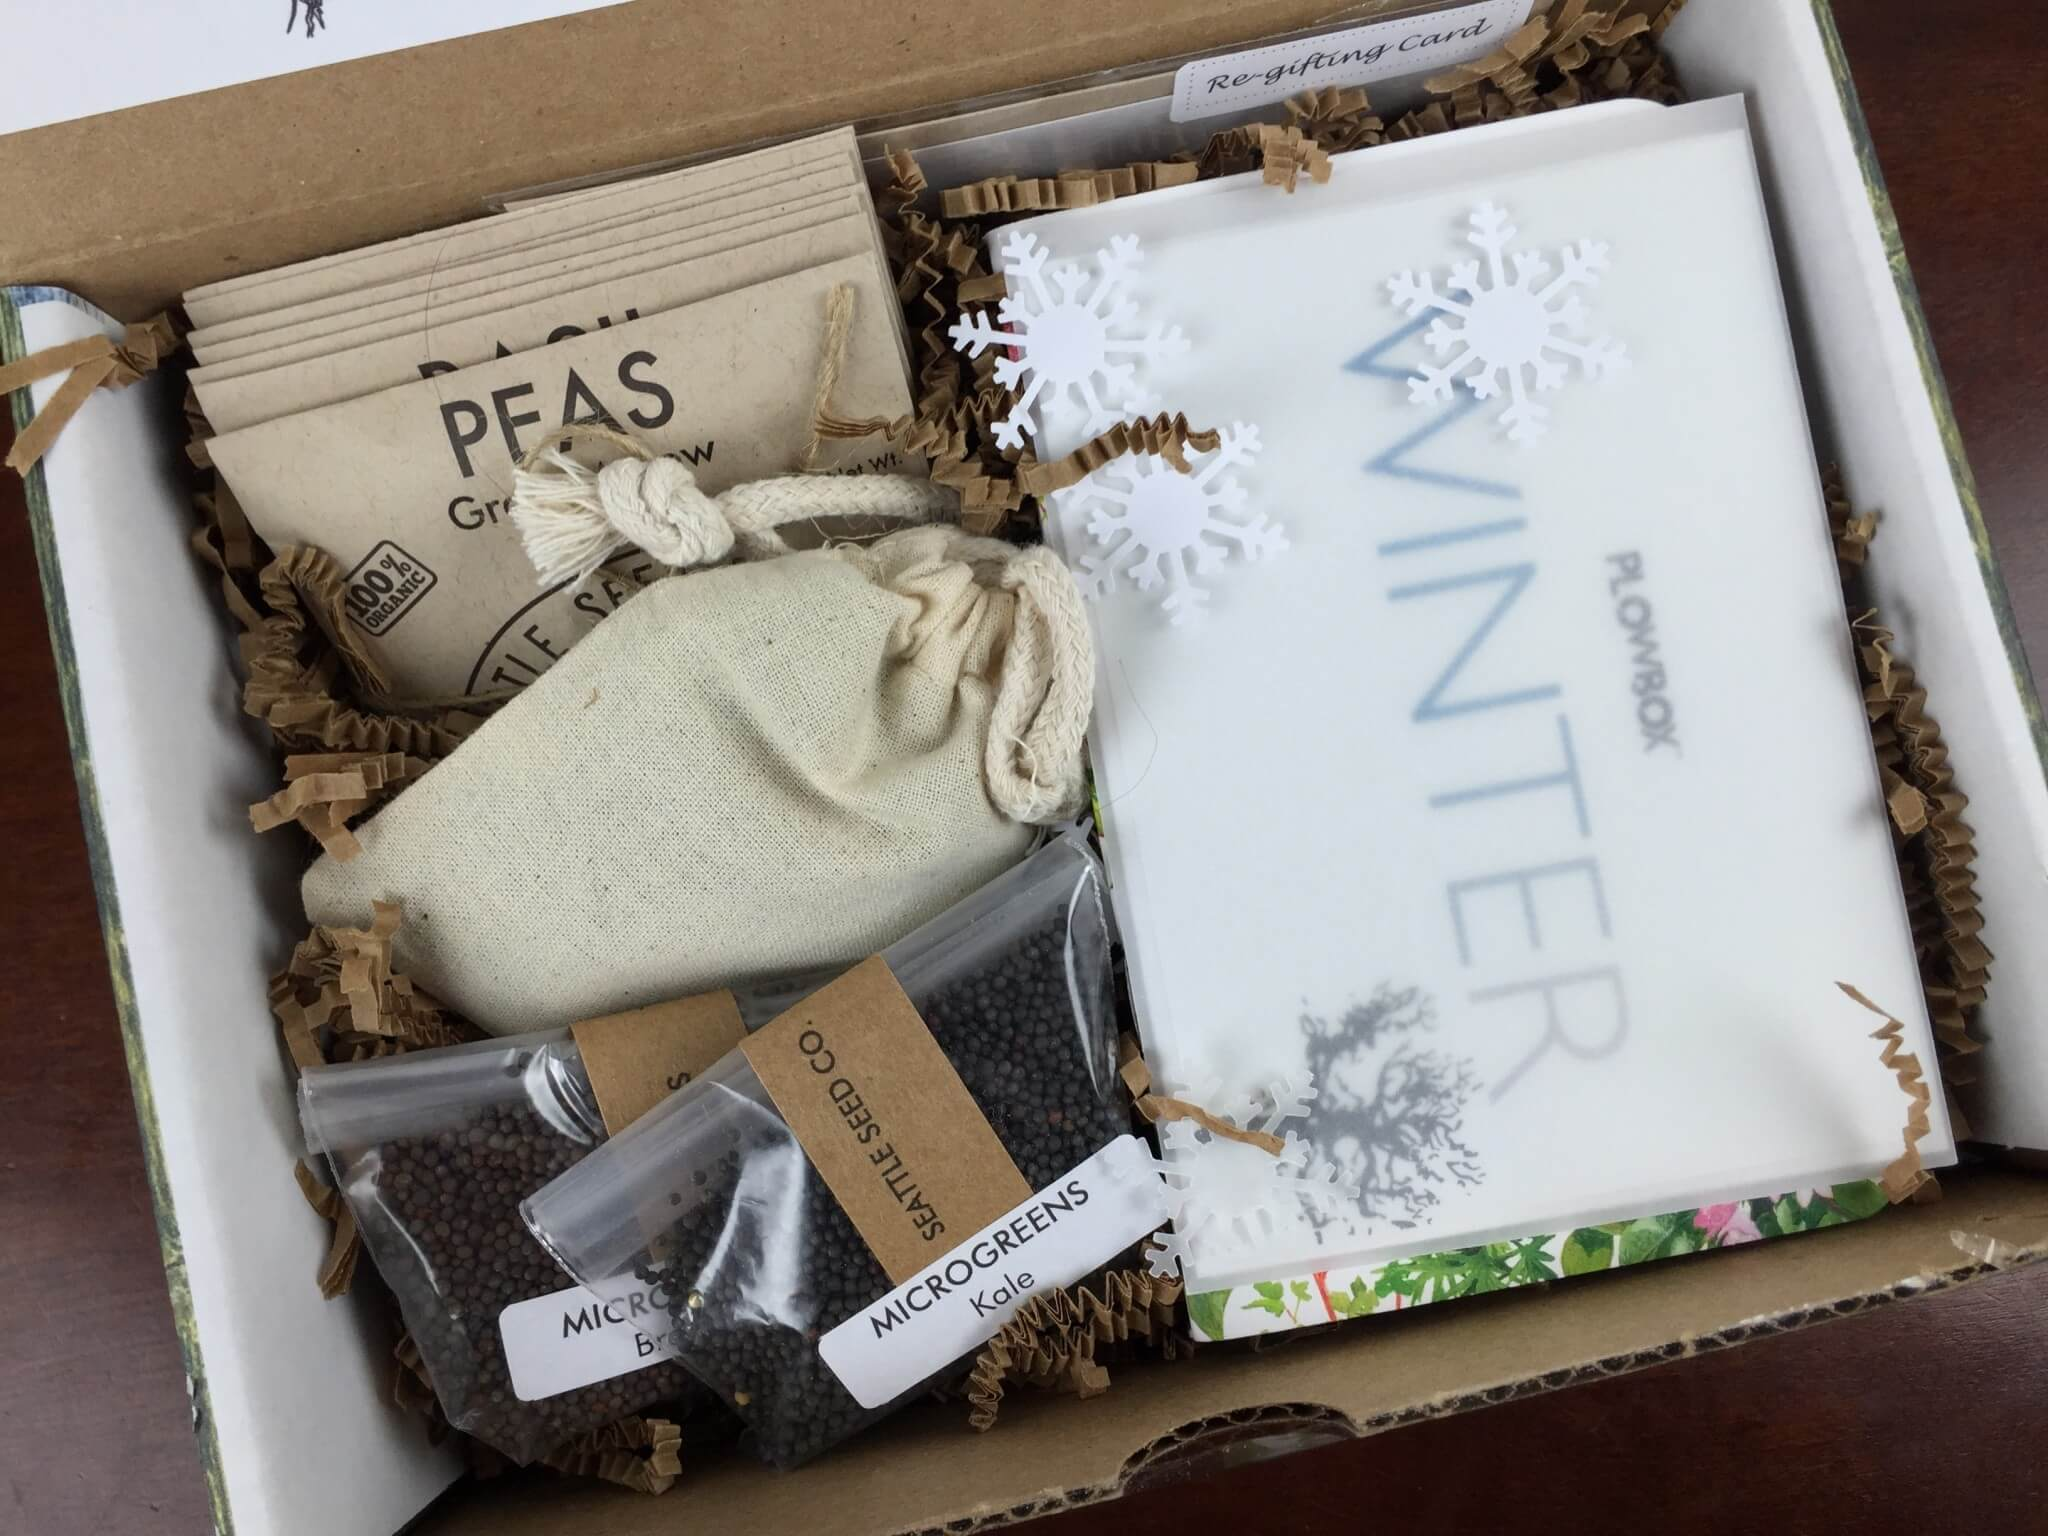 Plowbox Winter 2015 Gardening Subscription Box Review + Coupon